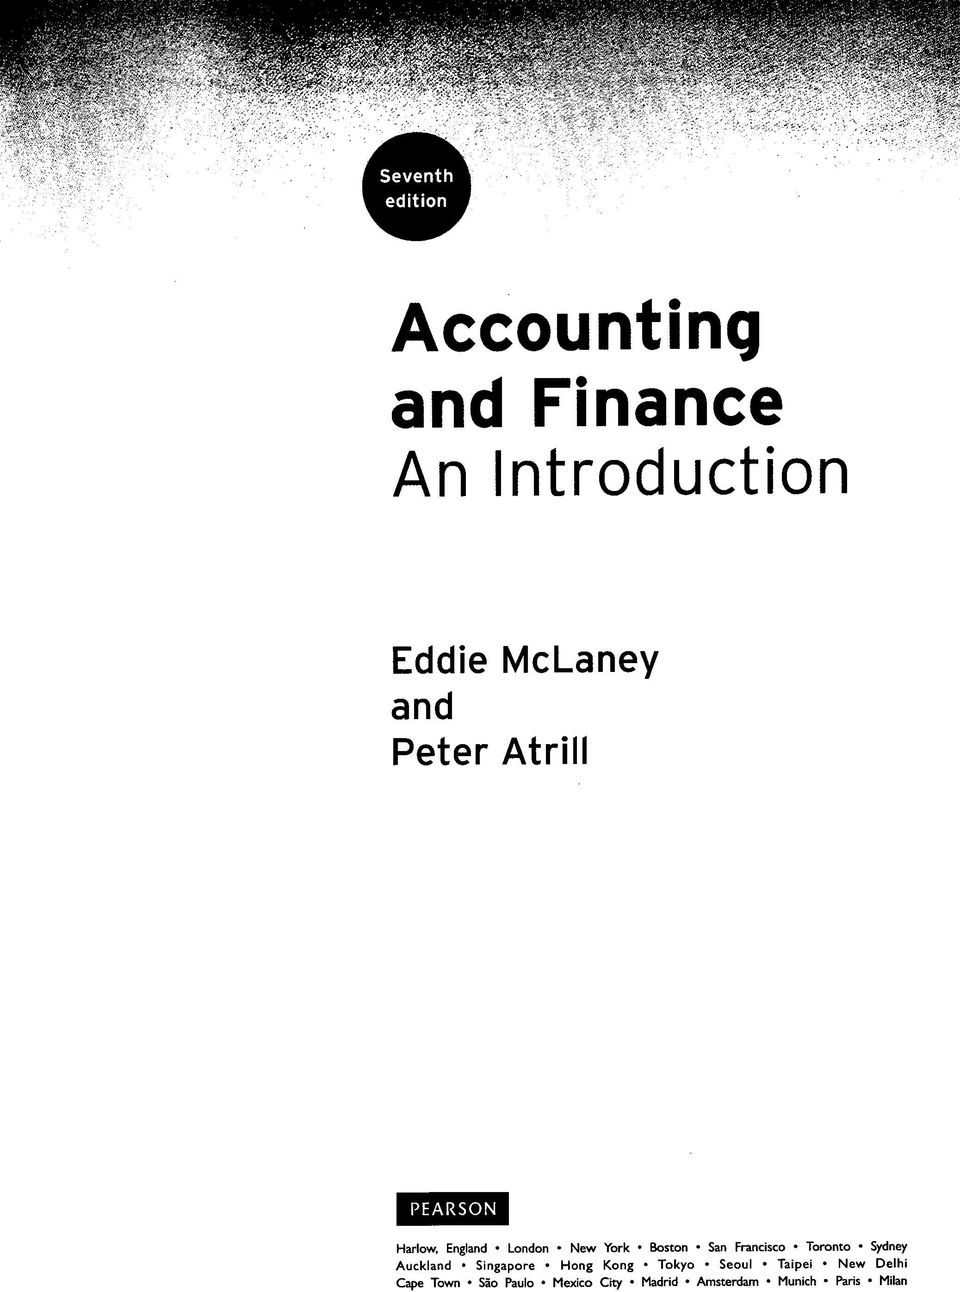 Accounting and finance an introduction eddie mclaney and peter toronto sydney auckland singapore hong kong tokyo seoul taipei new fandeluxe Choice Image